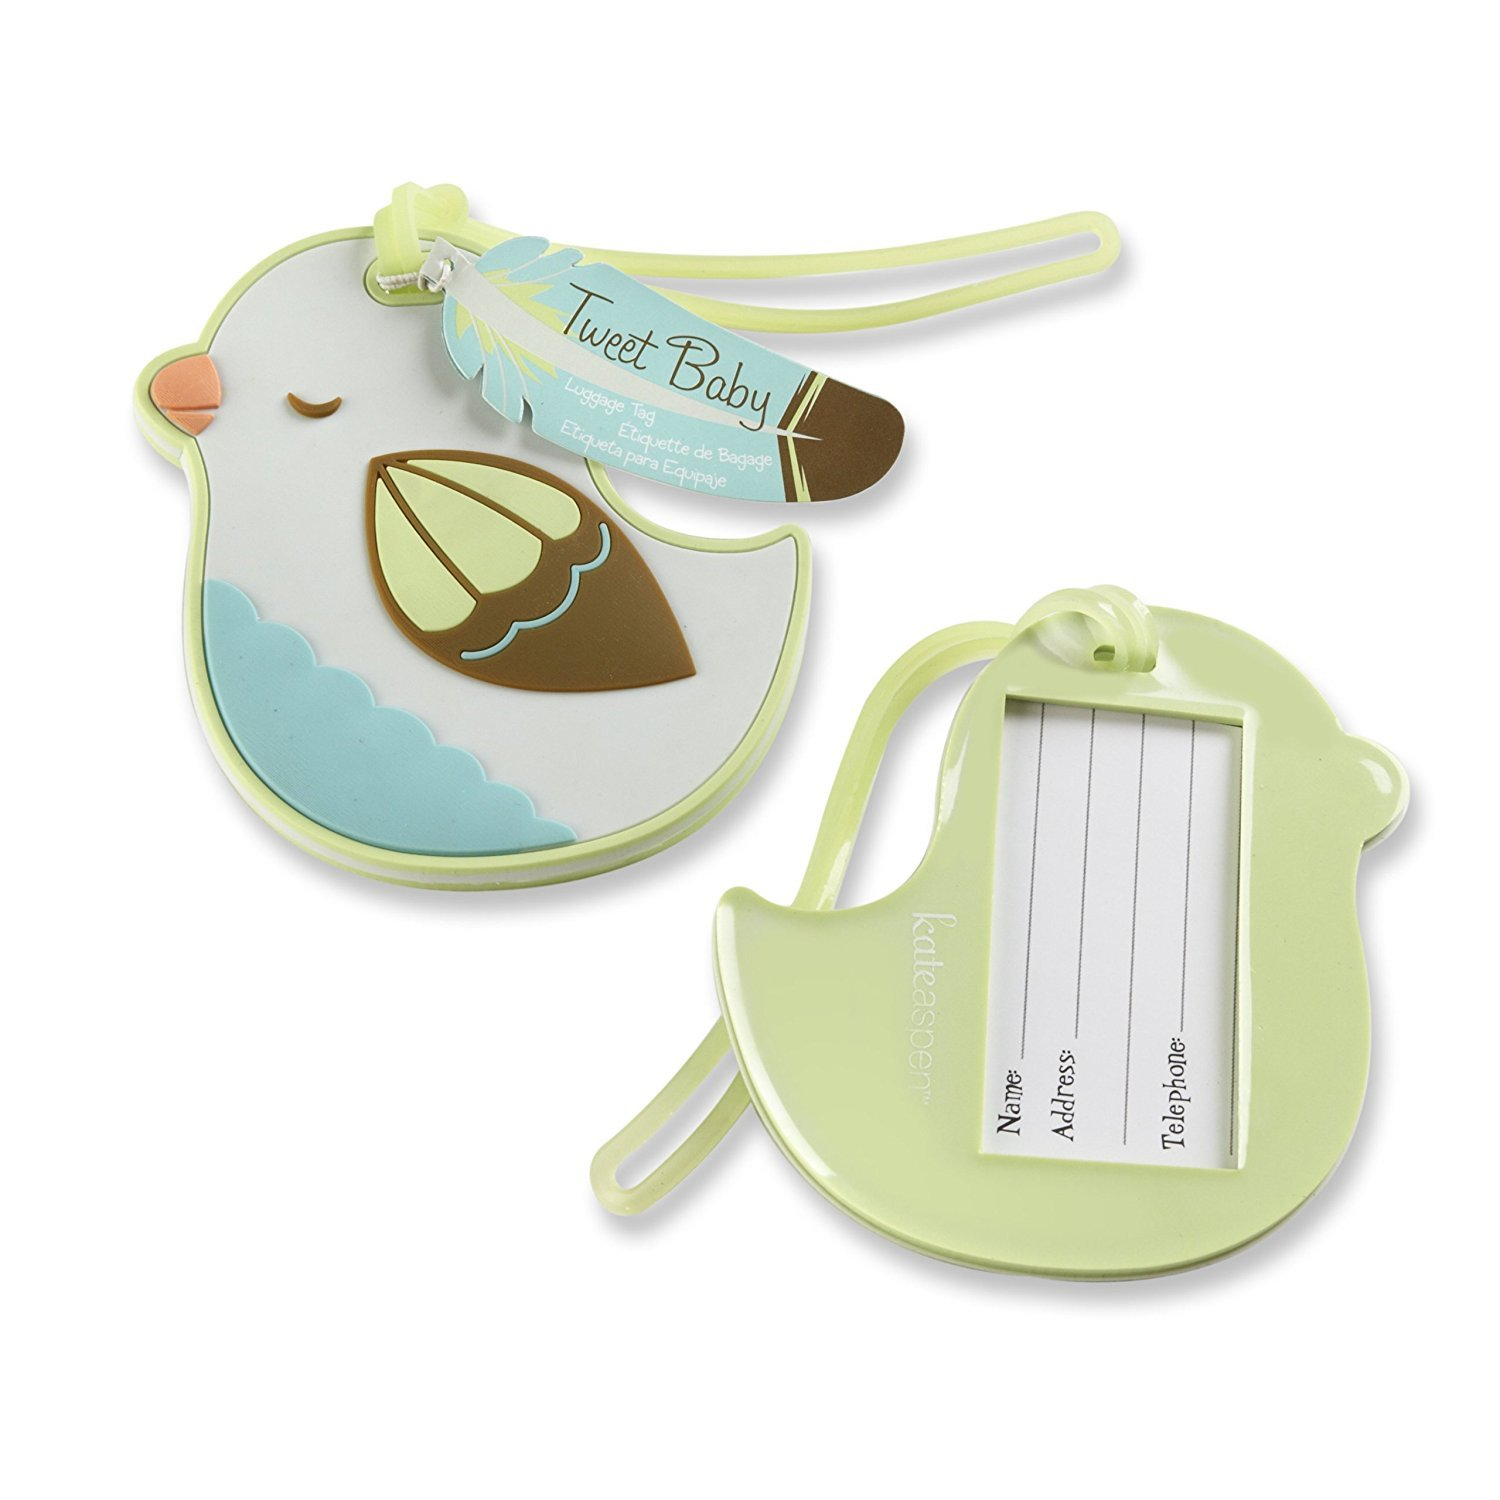 96pcs Tweet Baby Bird Luggage Tag For Baby Shower Gifts & Wedding Favors